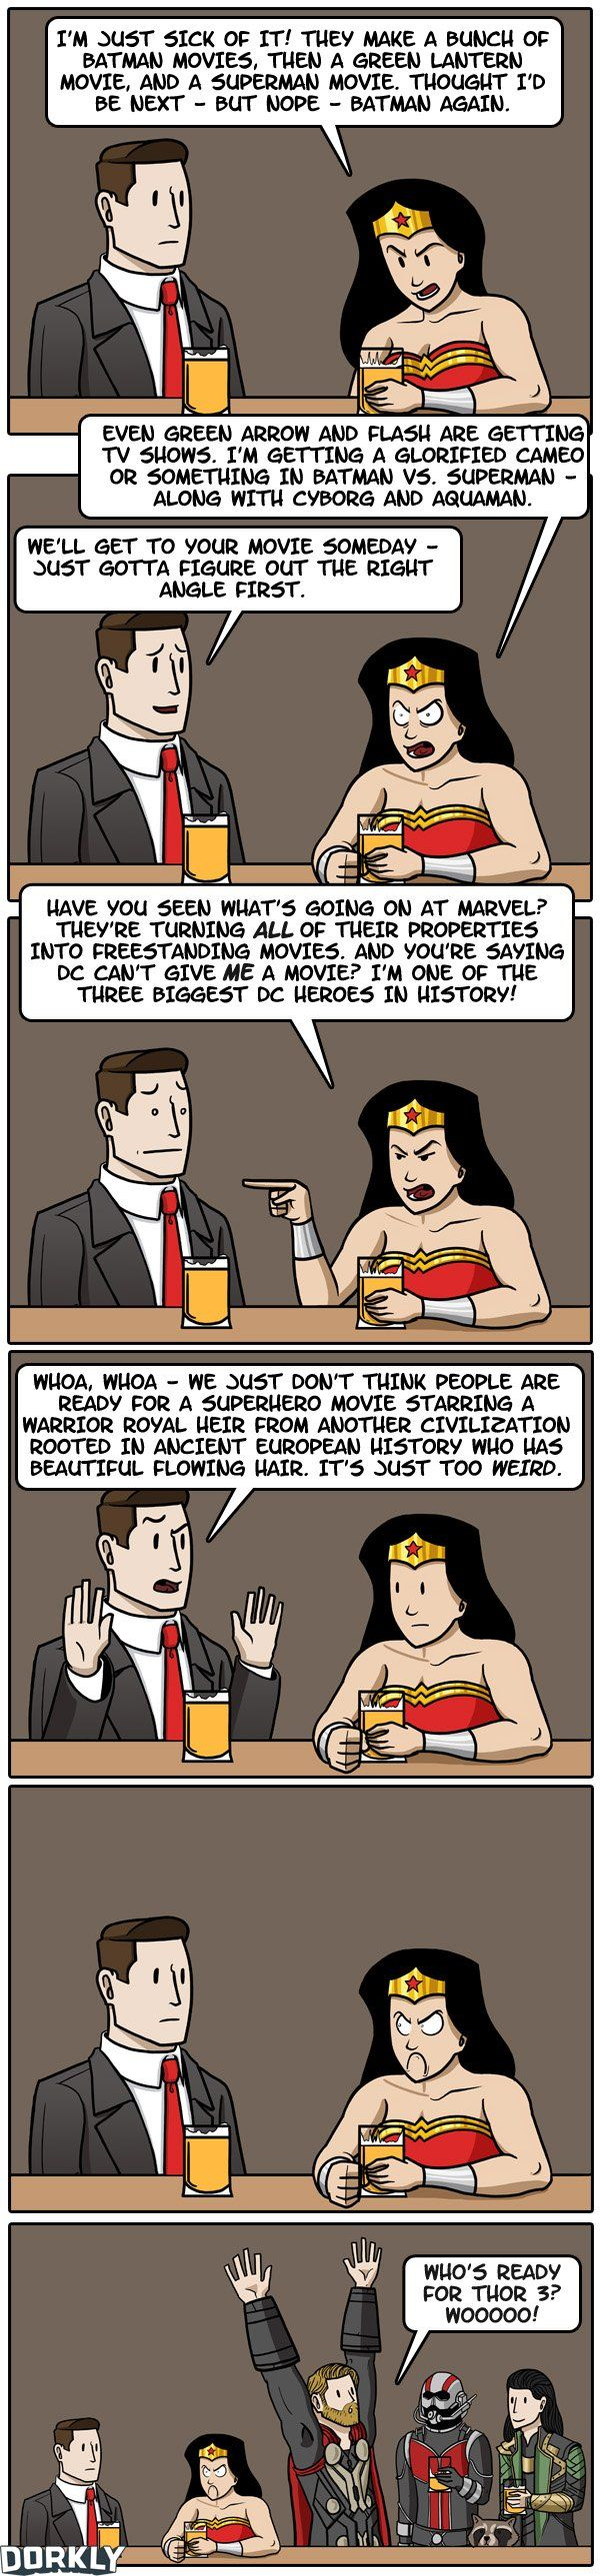 Dorkly Comic: A Wonder Woman Movie Just Wouldn't Work [Comic] | Geeks are Sexy Technology News